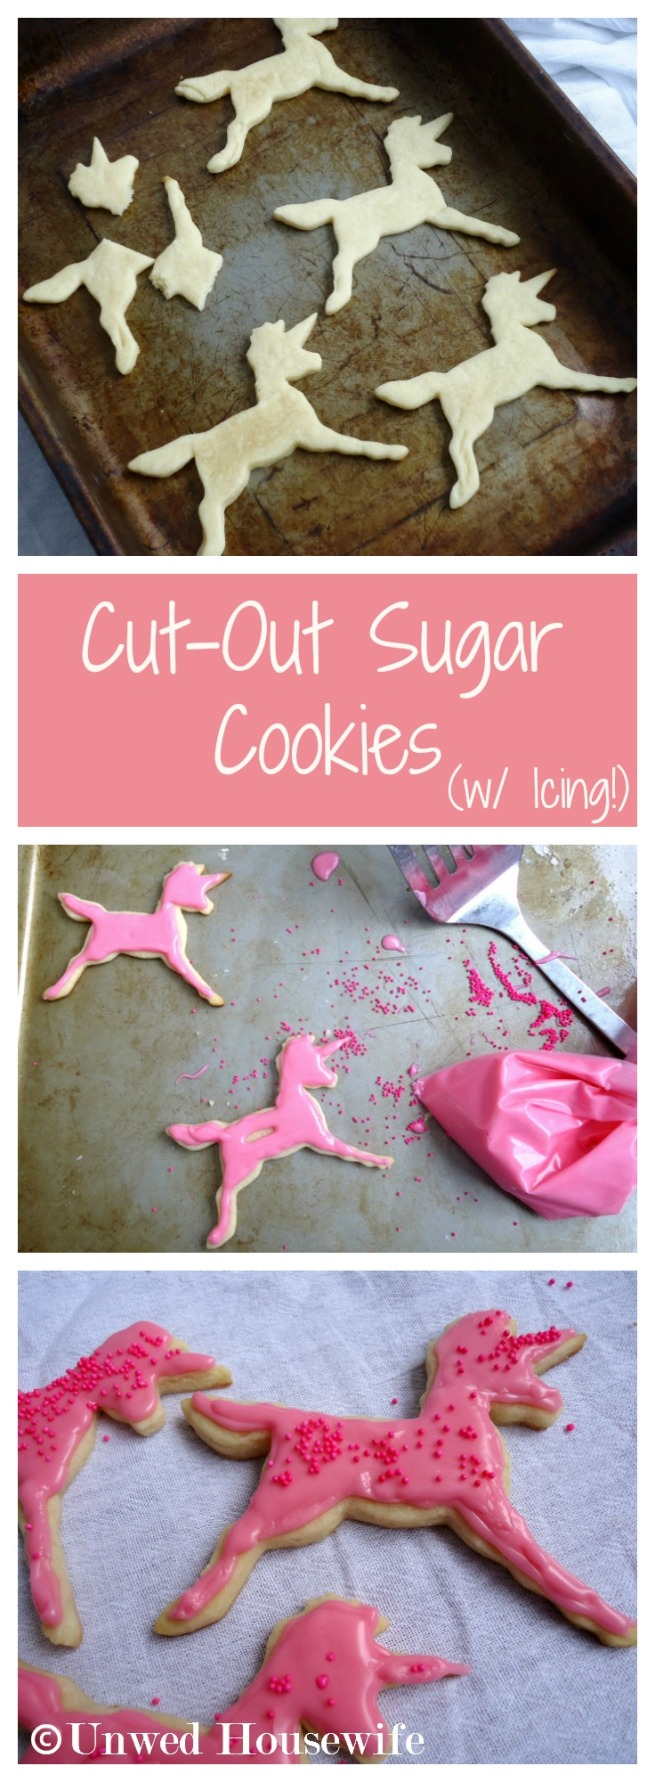 Cut-Out Sugar Cookies with Icing 2